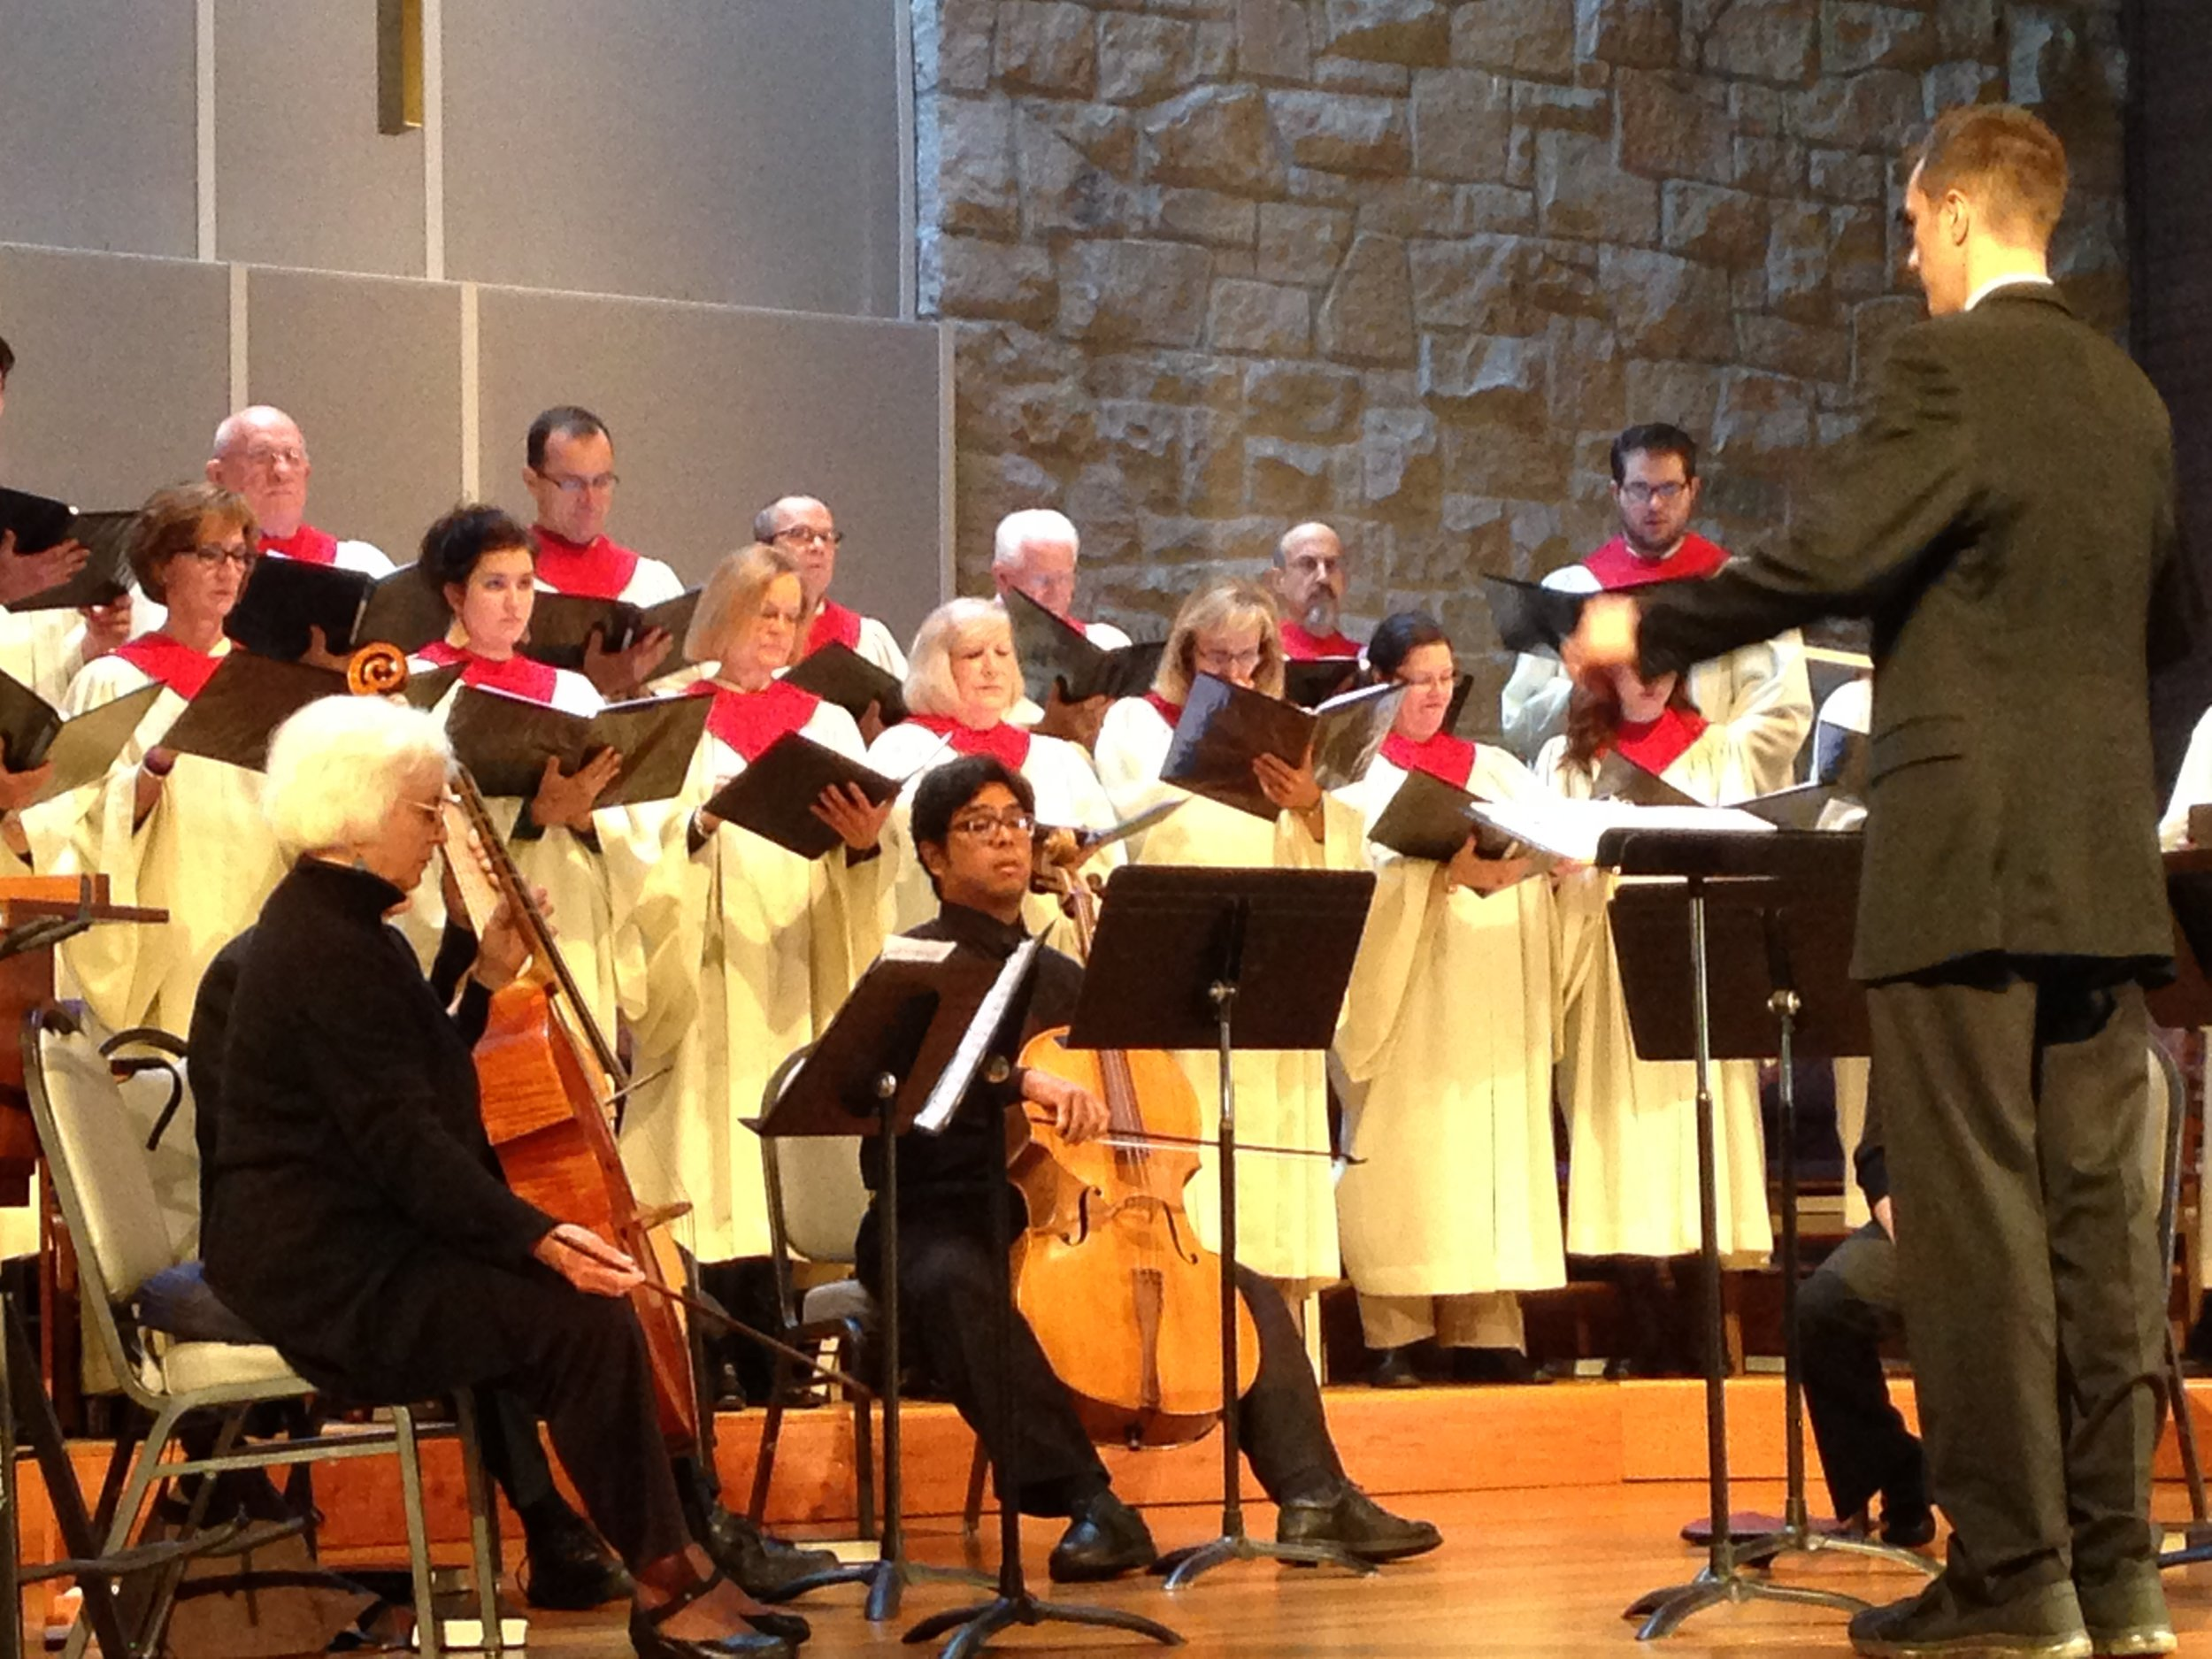 Bethel's Music Director with Chancel Choir and strings at Worship Service